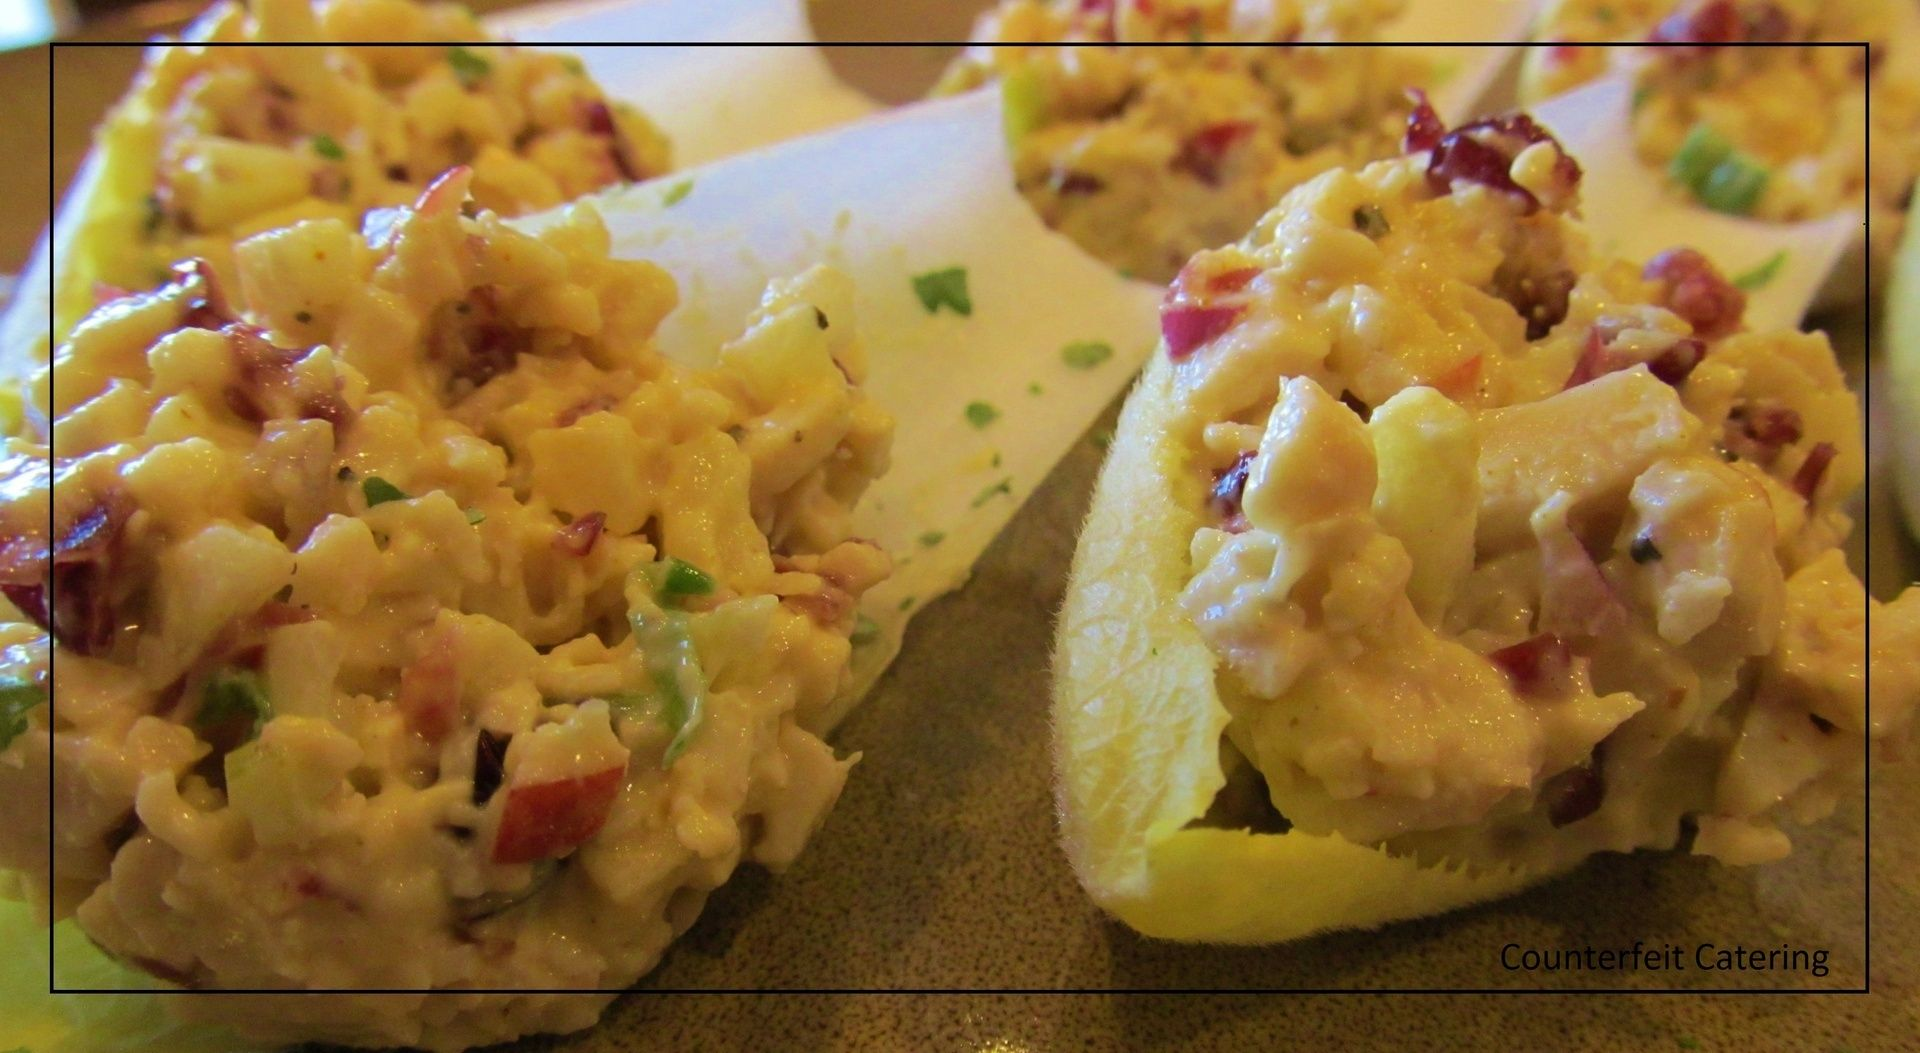 Curried chicken salad on endive counterfeit catering